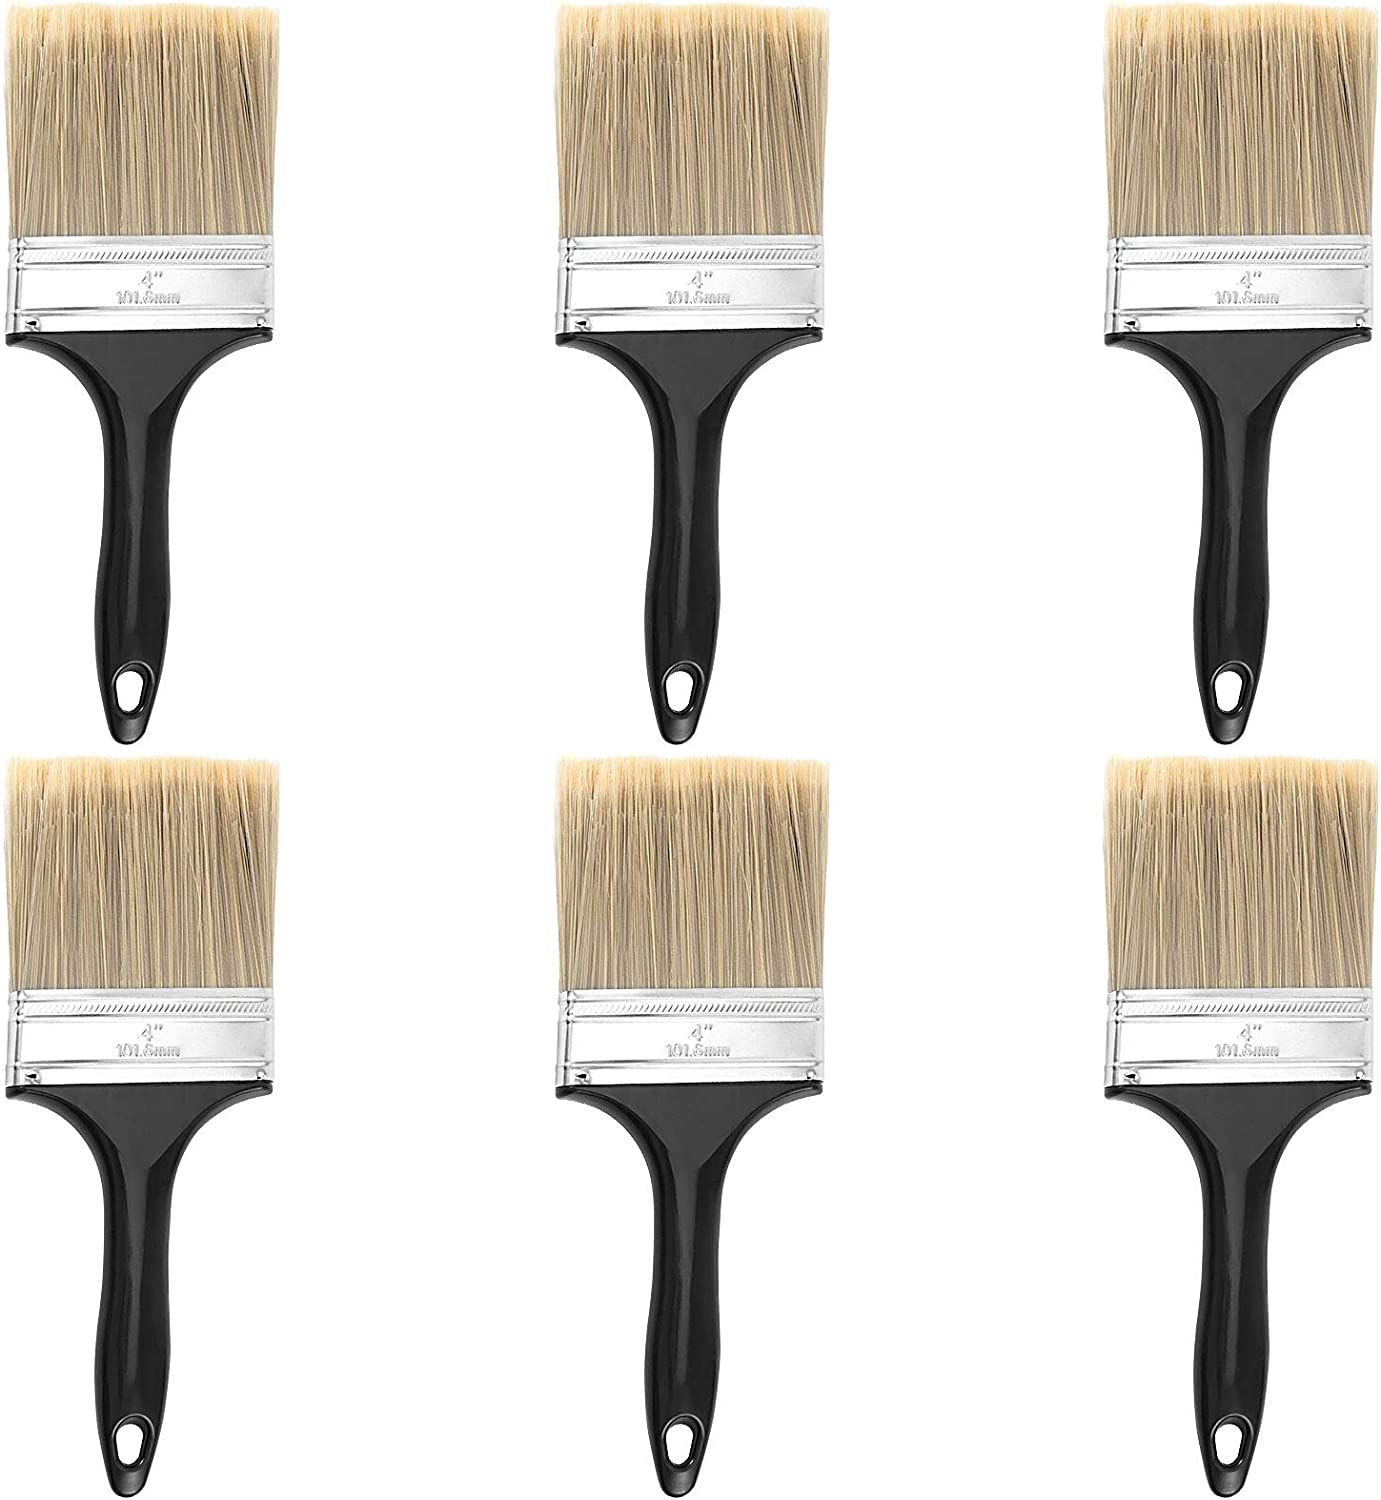 ZEONHEI 6 Ea 4-inch Pro Grade Paint Brushes, Home Wall Trim House Paintbrush Set, Cheap Paint Tools Paint Brushes Set with Treated Plastic Handle